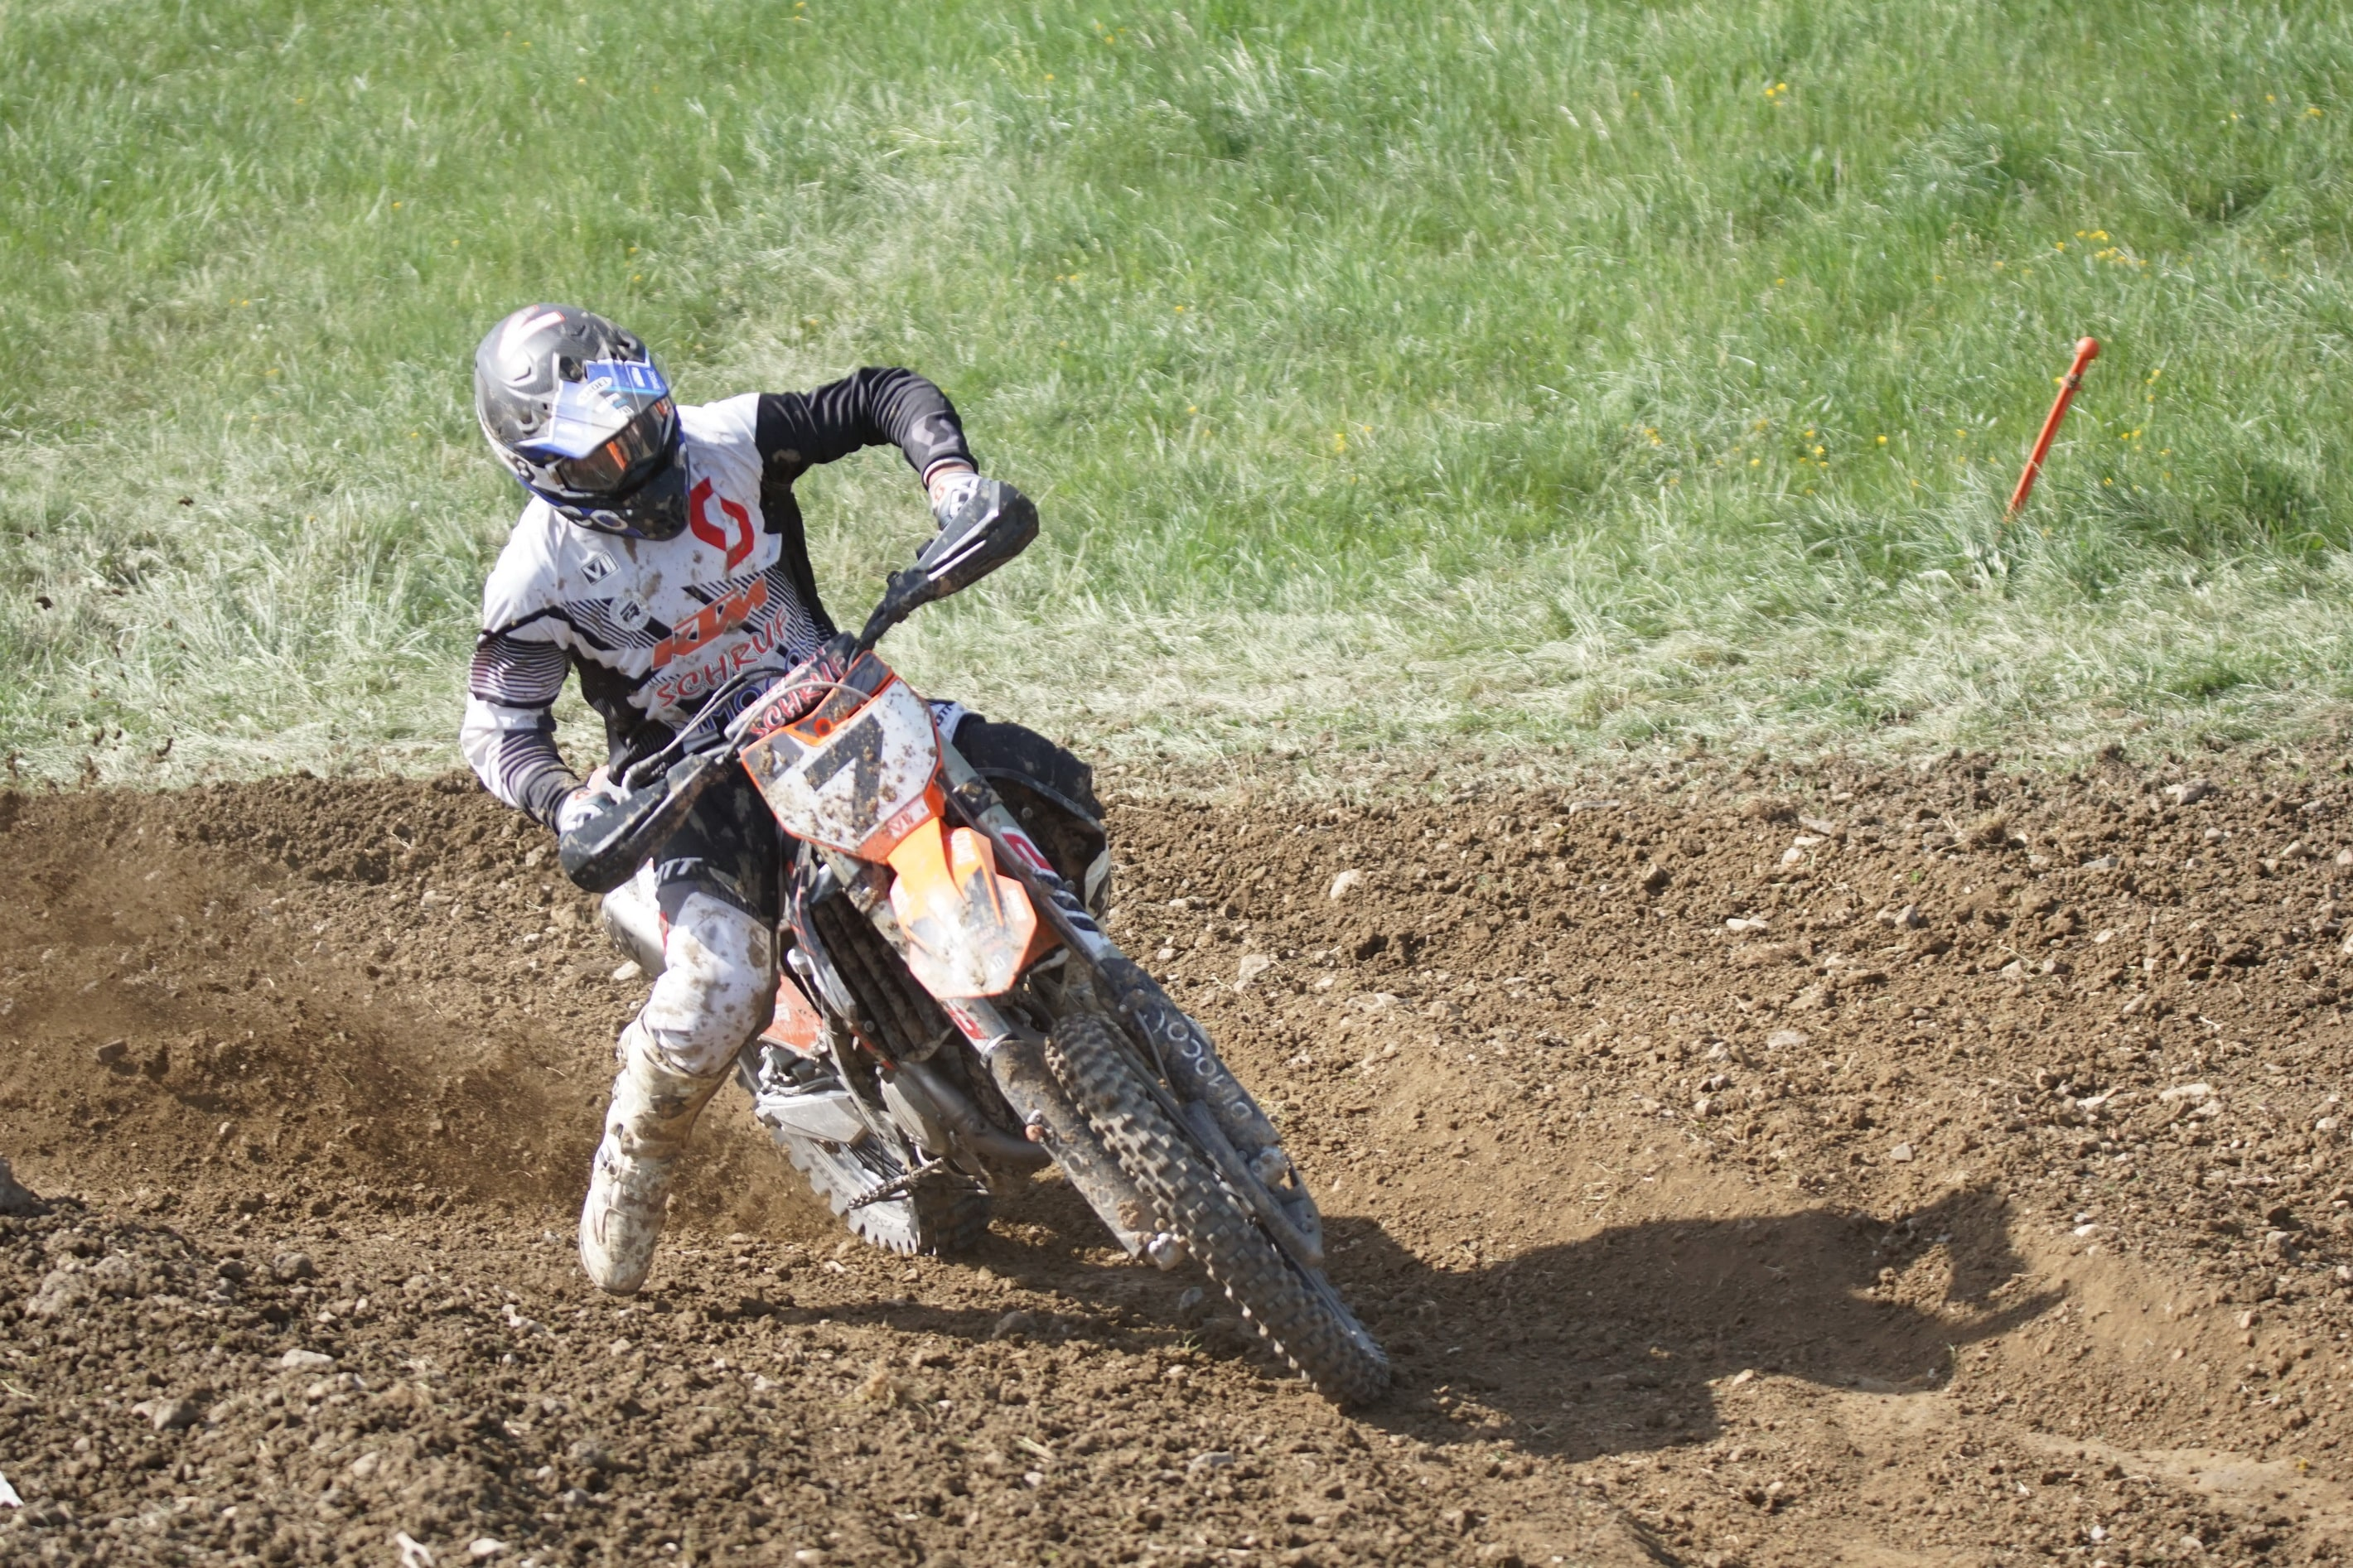 DSC 894_Moto Cross Sittendorf Teil1 am 29.04.2018